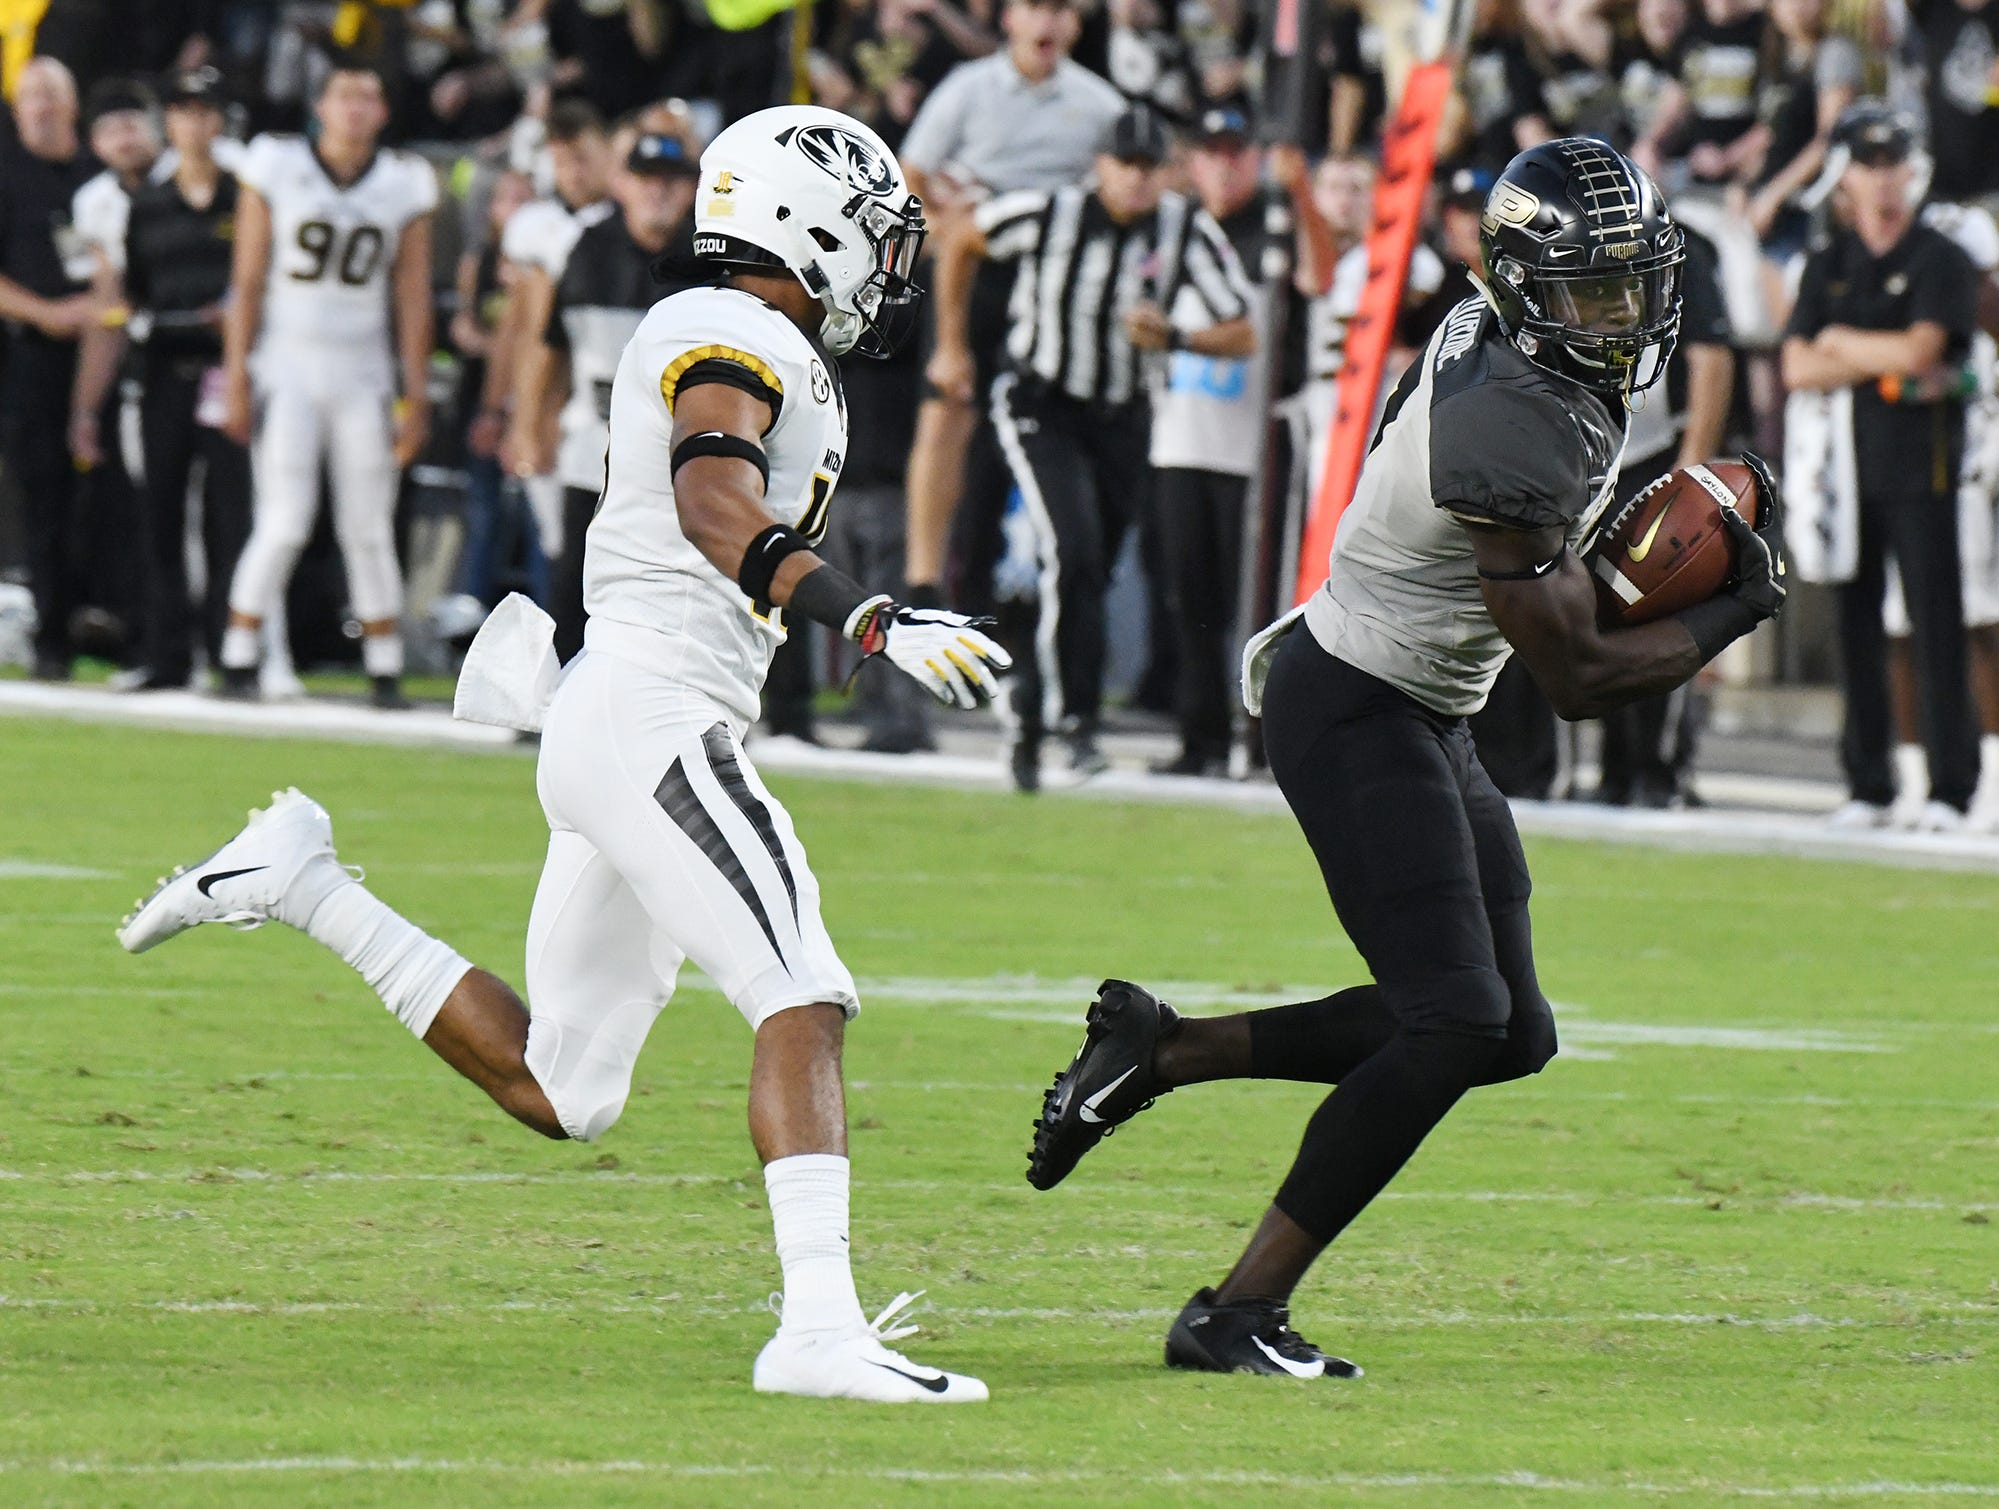 Isaac Zico of Purdue with a first half pass reception against Missouri Saturday, September 15, 2018, in West Lafayette.